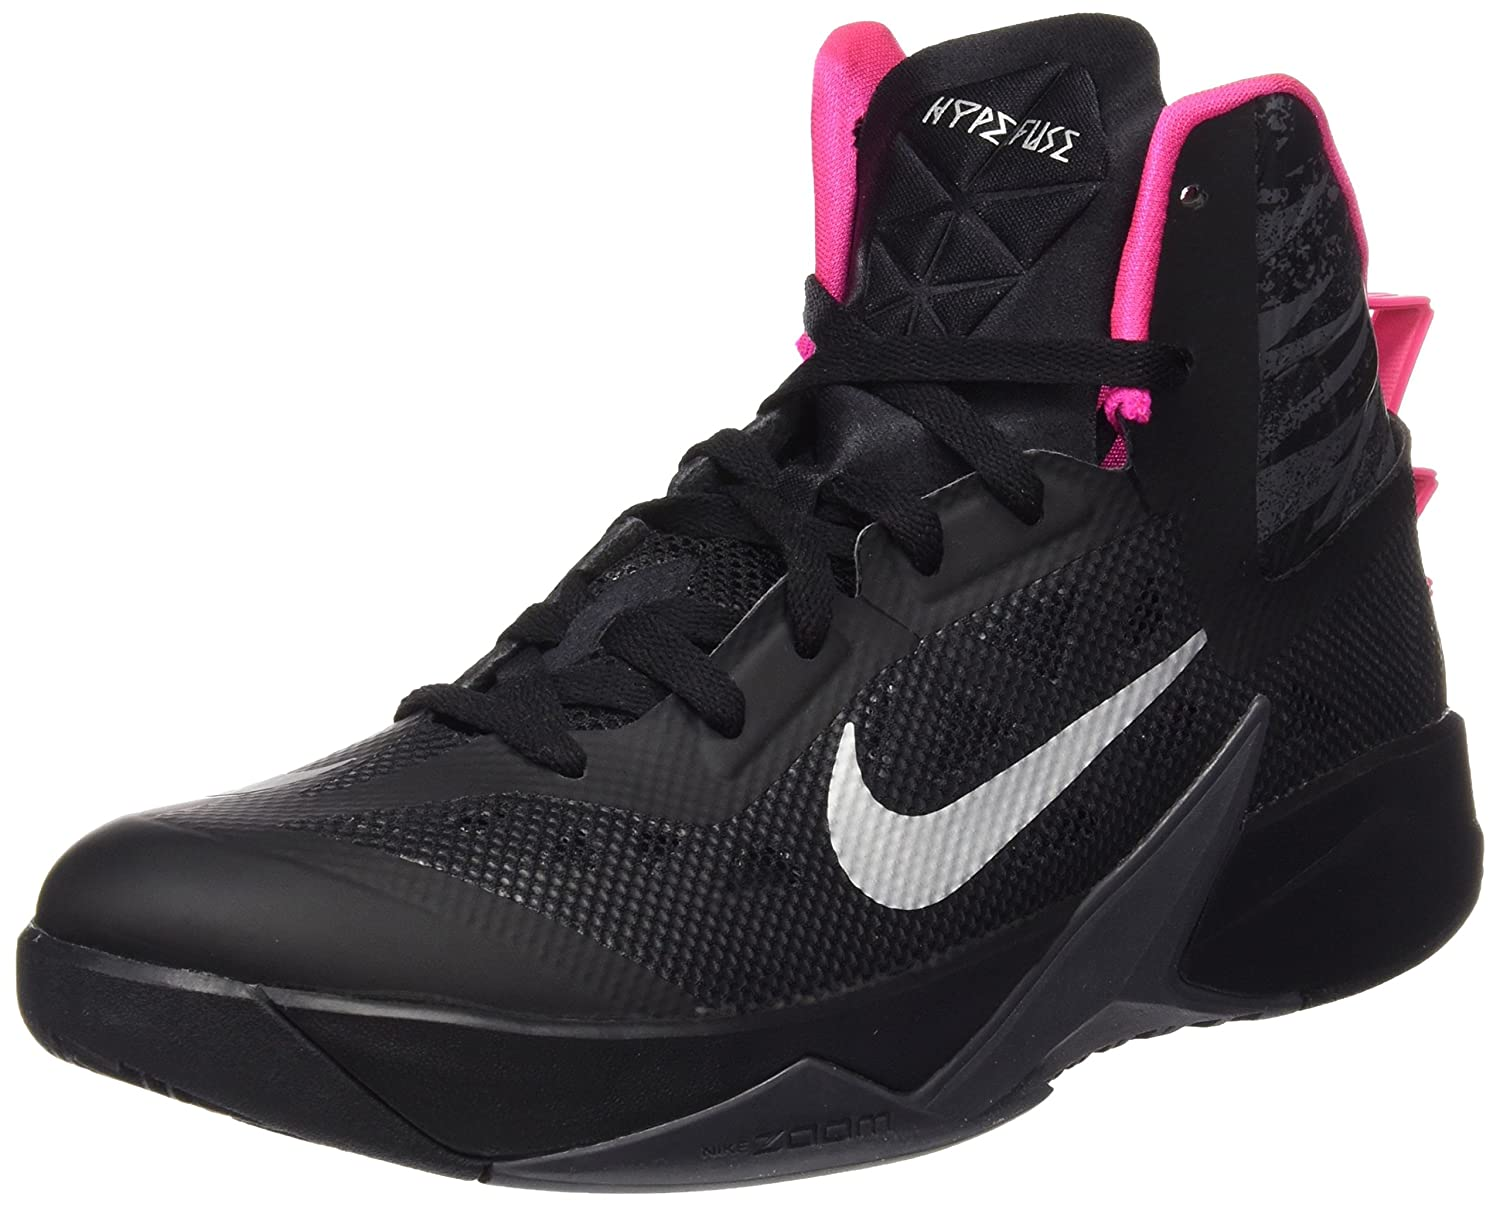 Nike Mens Zoom Hyperfuse 2013 Basketball Shoes B00BY9K29A 10.5 D(M) US|Blck/Mtllc Slvr/Drk Gry/Pnk Fl